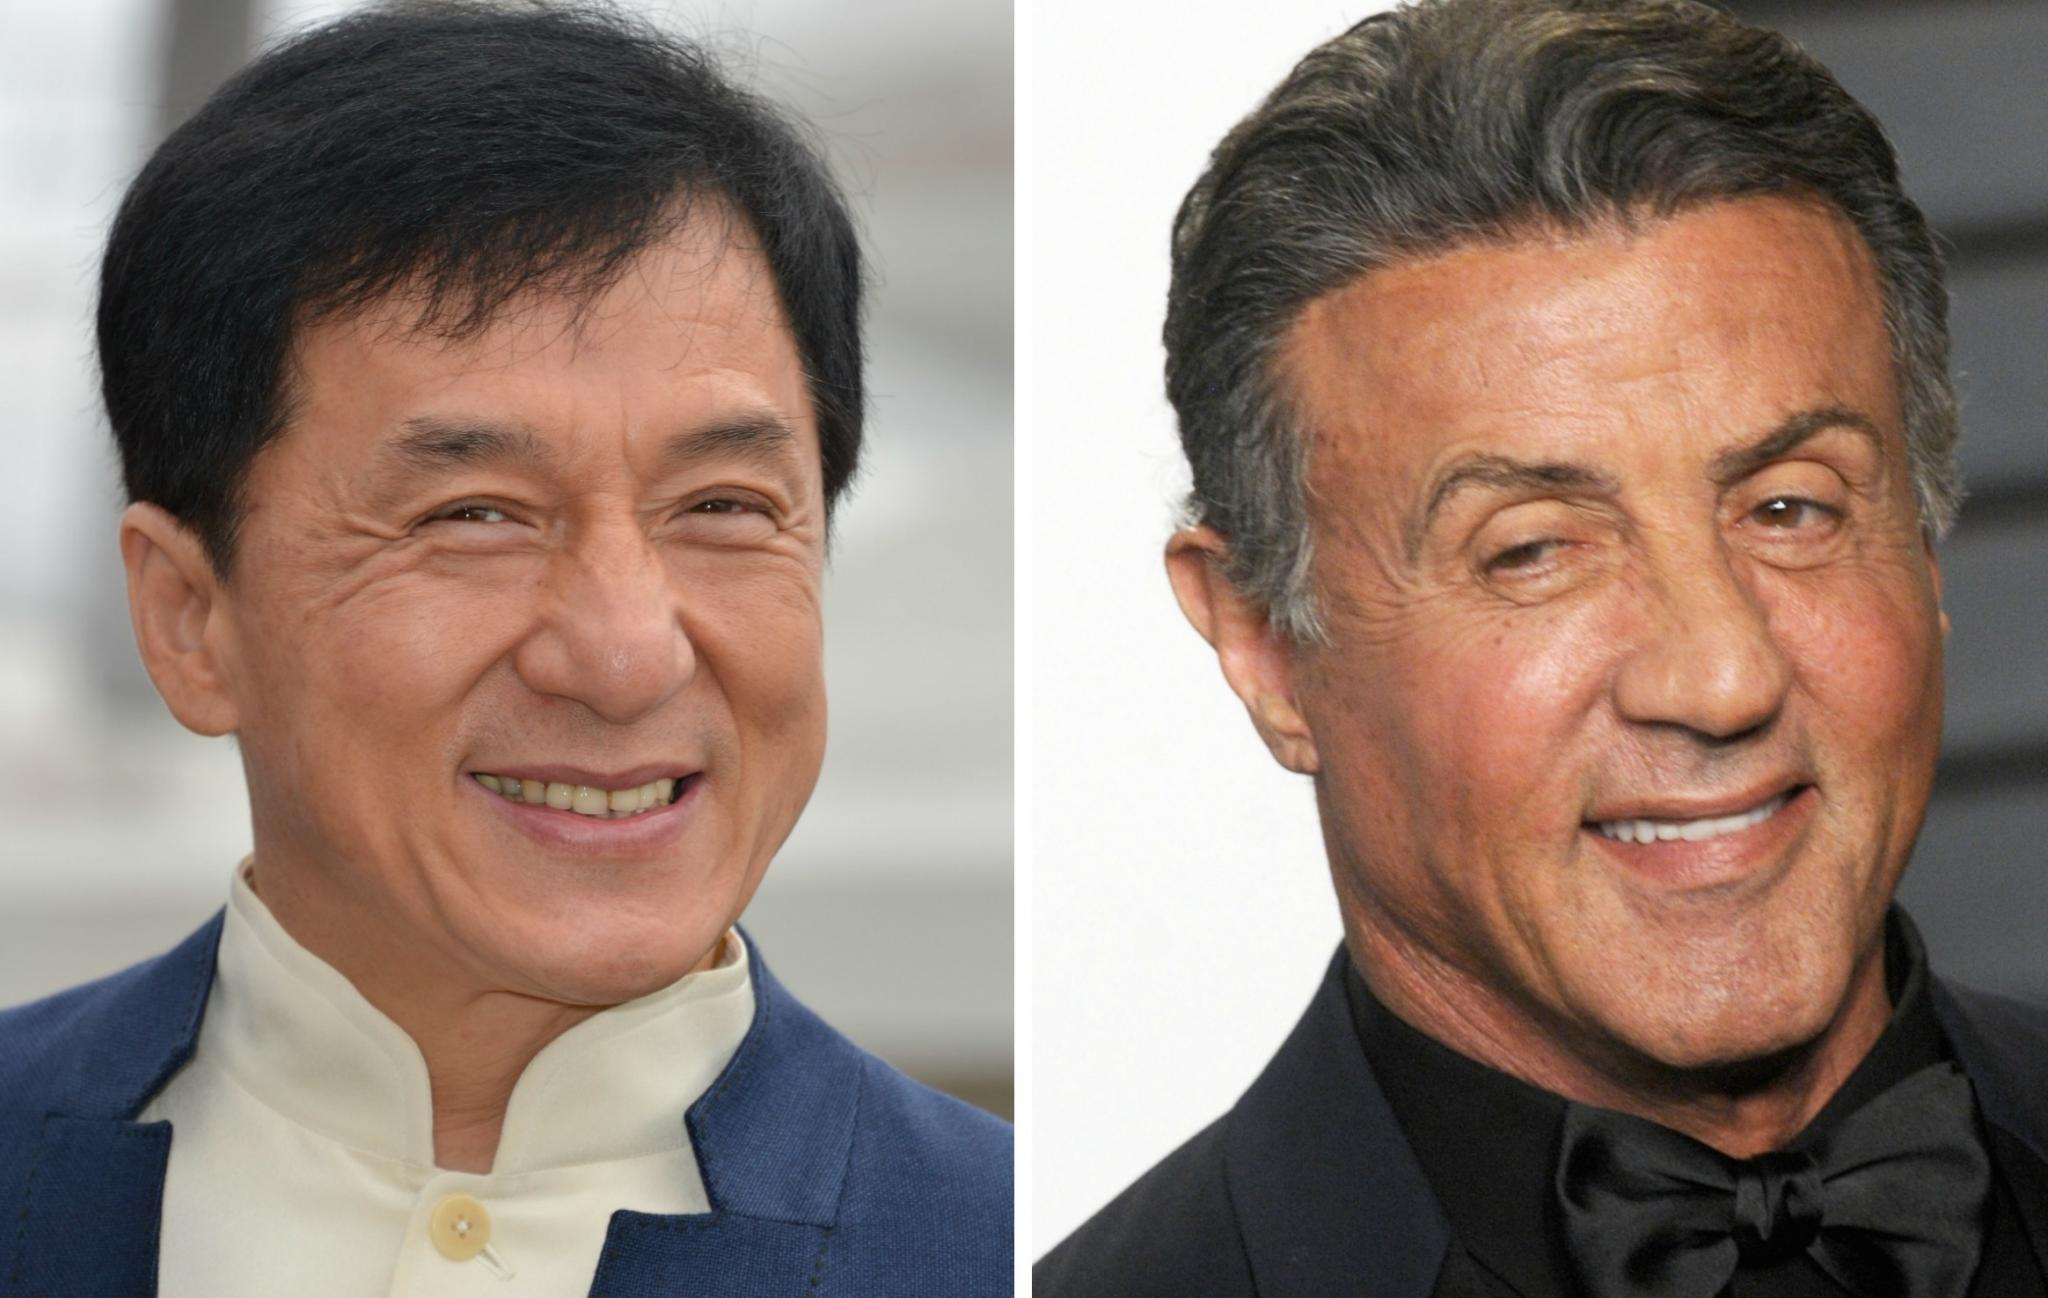 Tournage à risque pour Stallone et Jackie Chan © Reporters